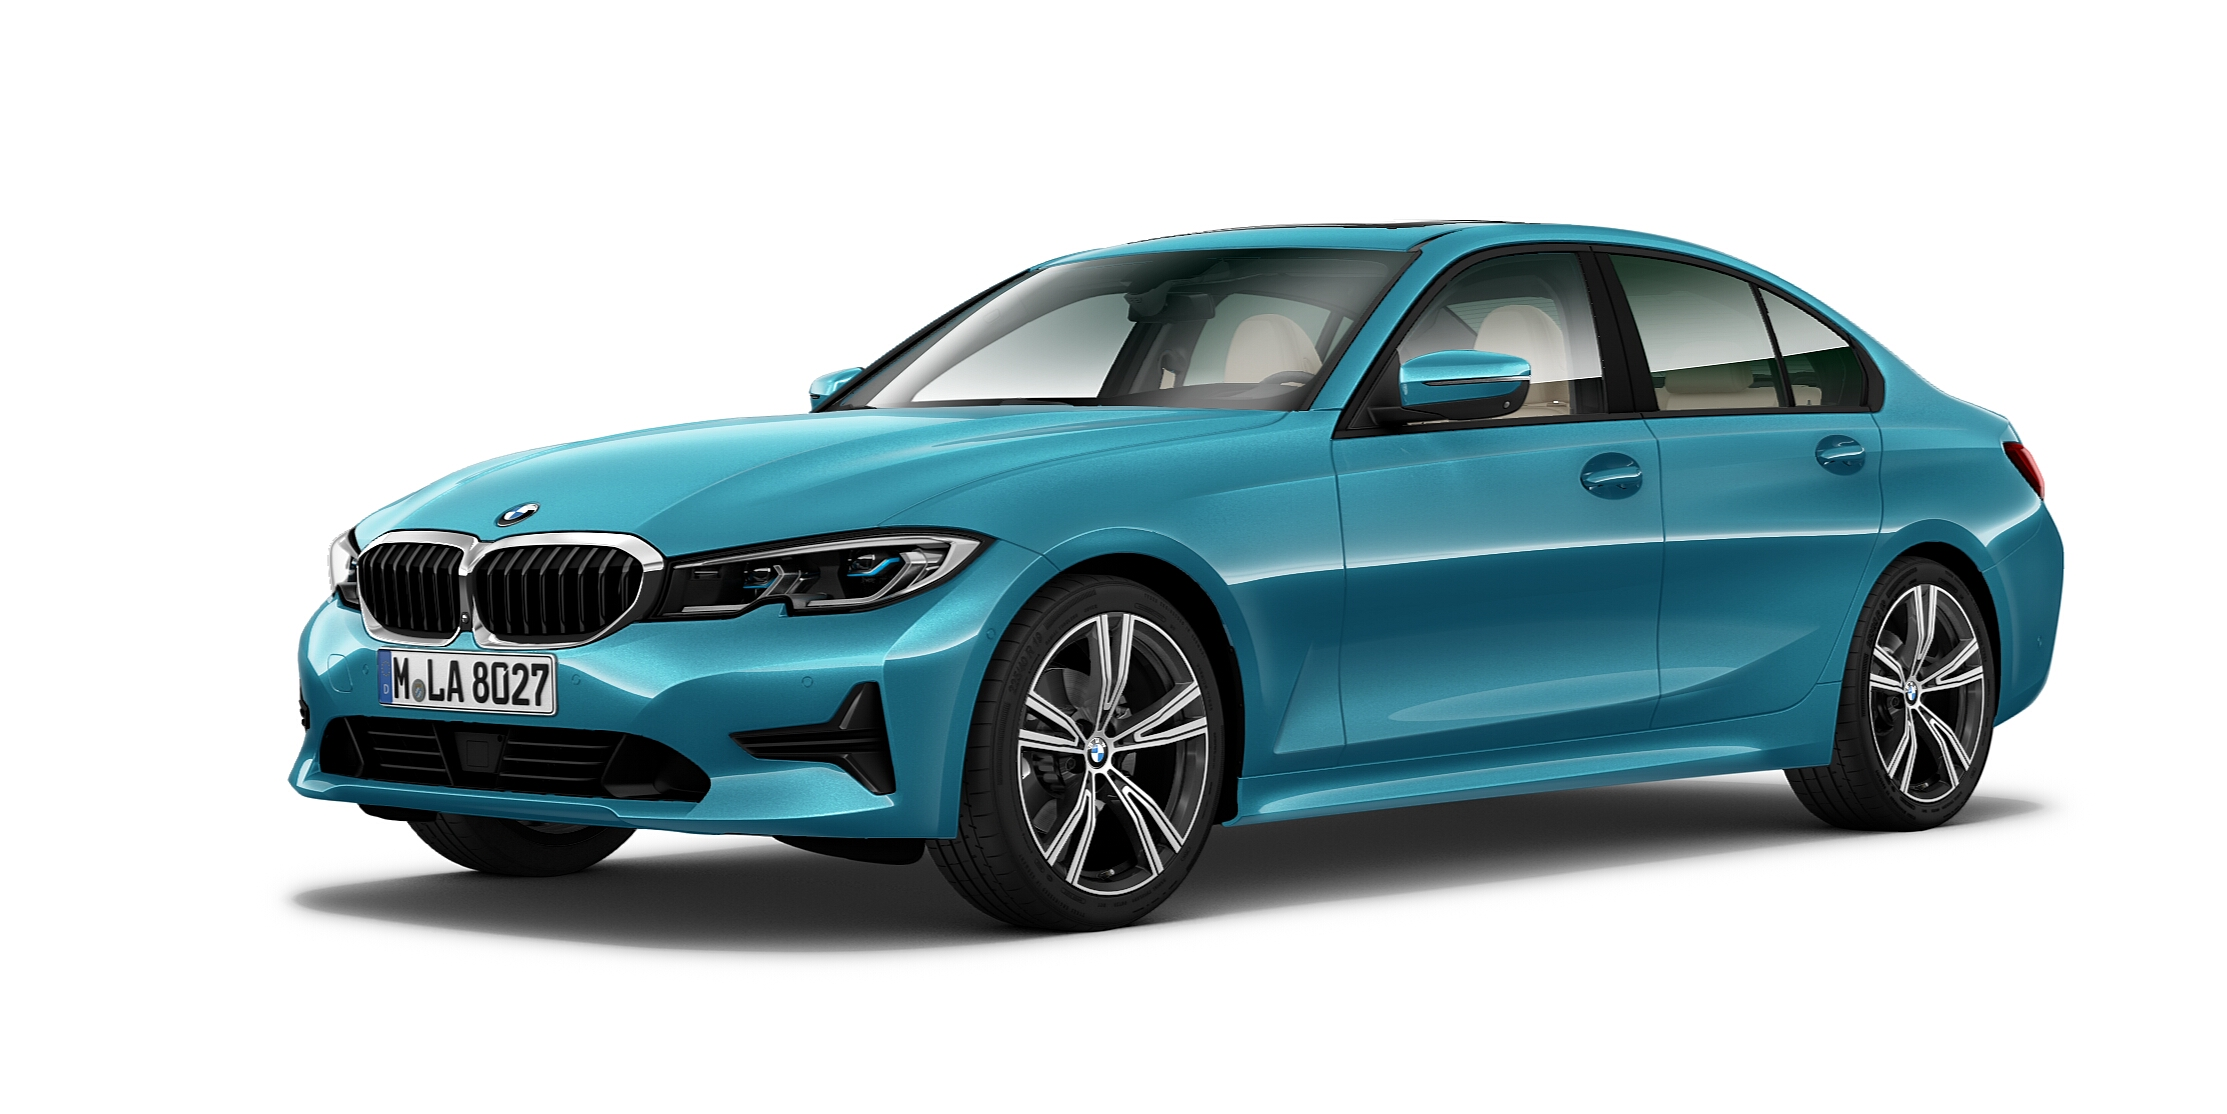 Here Are 84 Special Colors Available For The New Bmw G20 3 Series